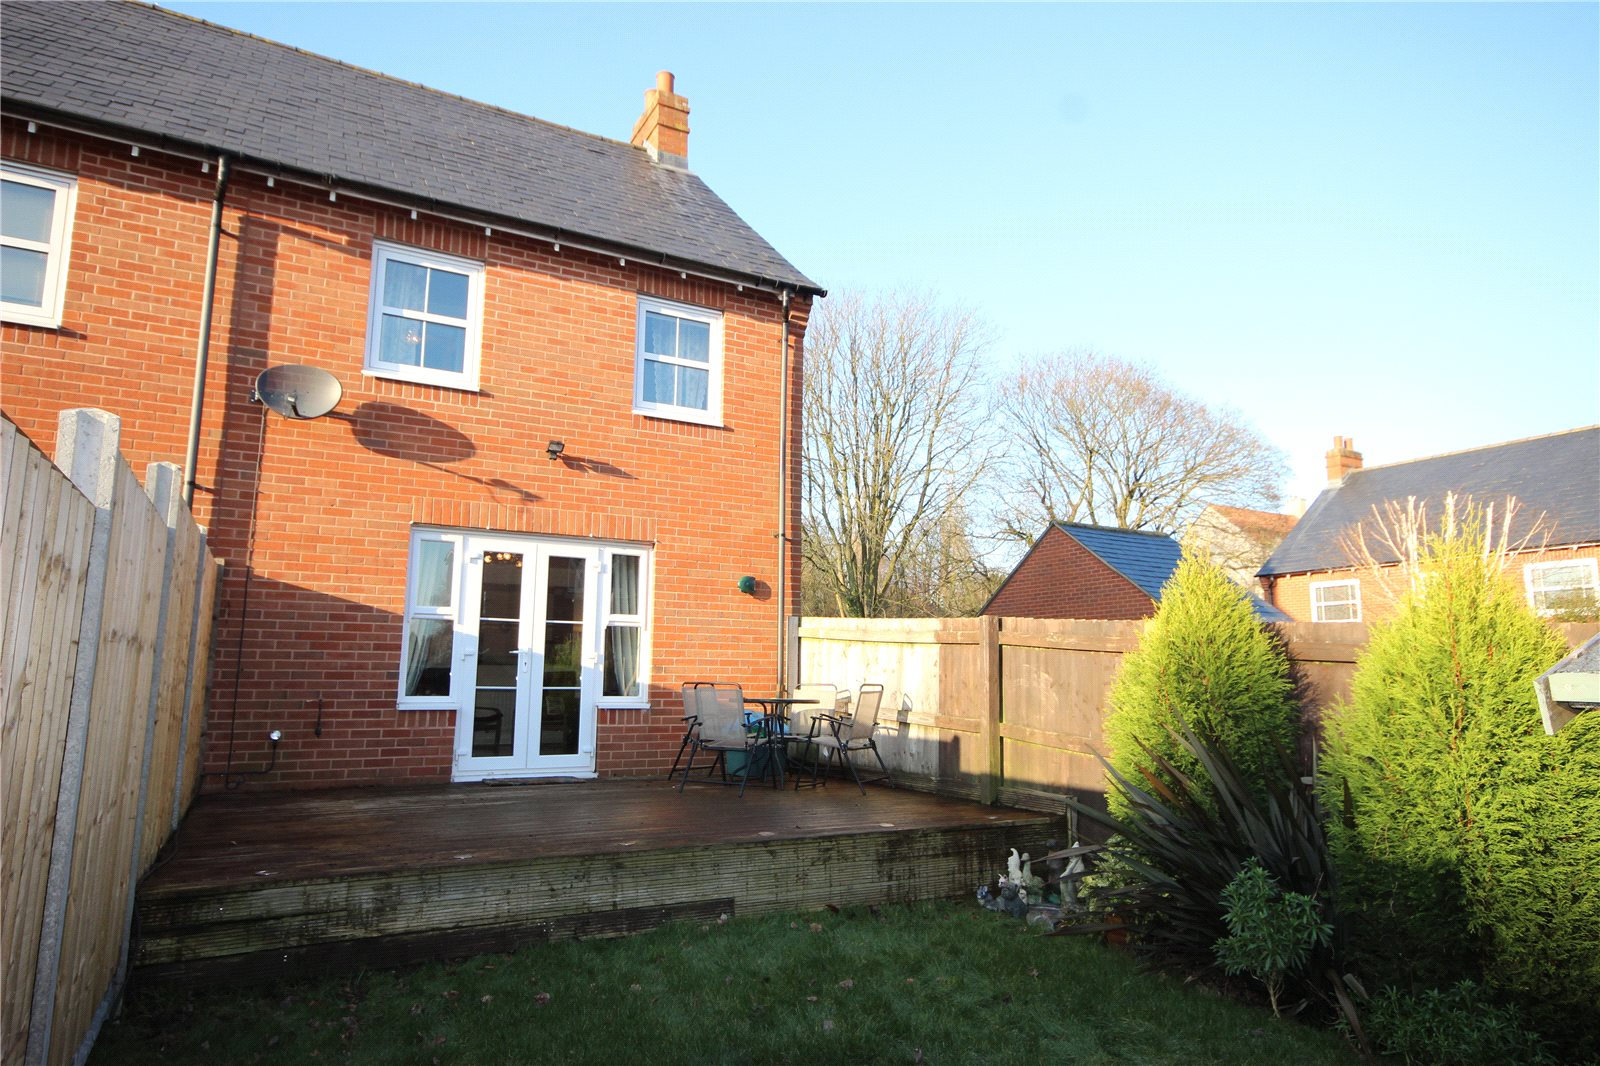 Cj hole bradley stoke 3 bedroom house to rent in hickory for Hickory lane